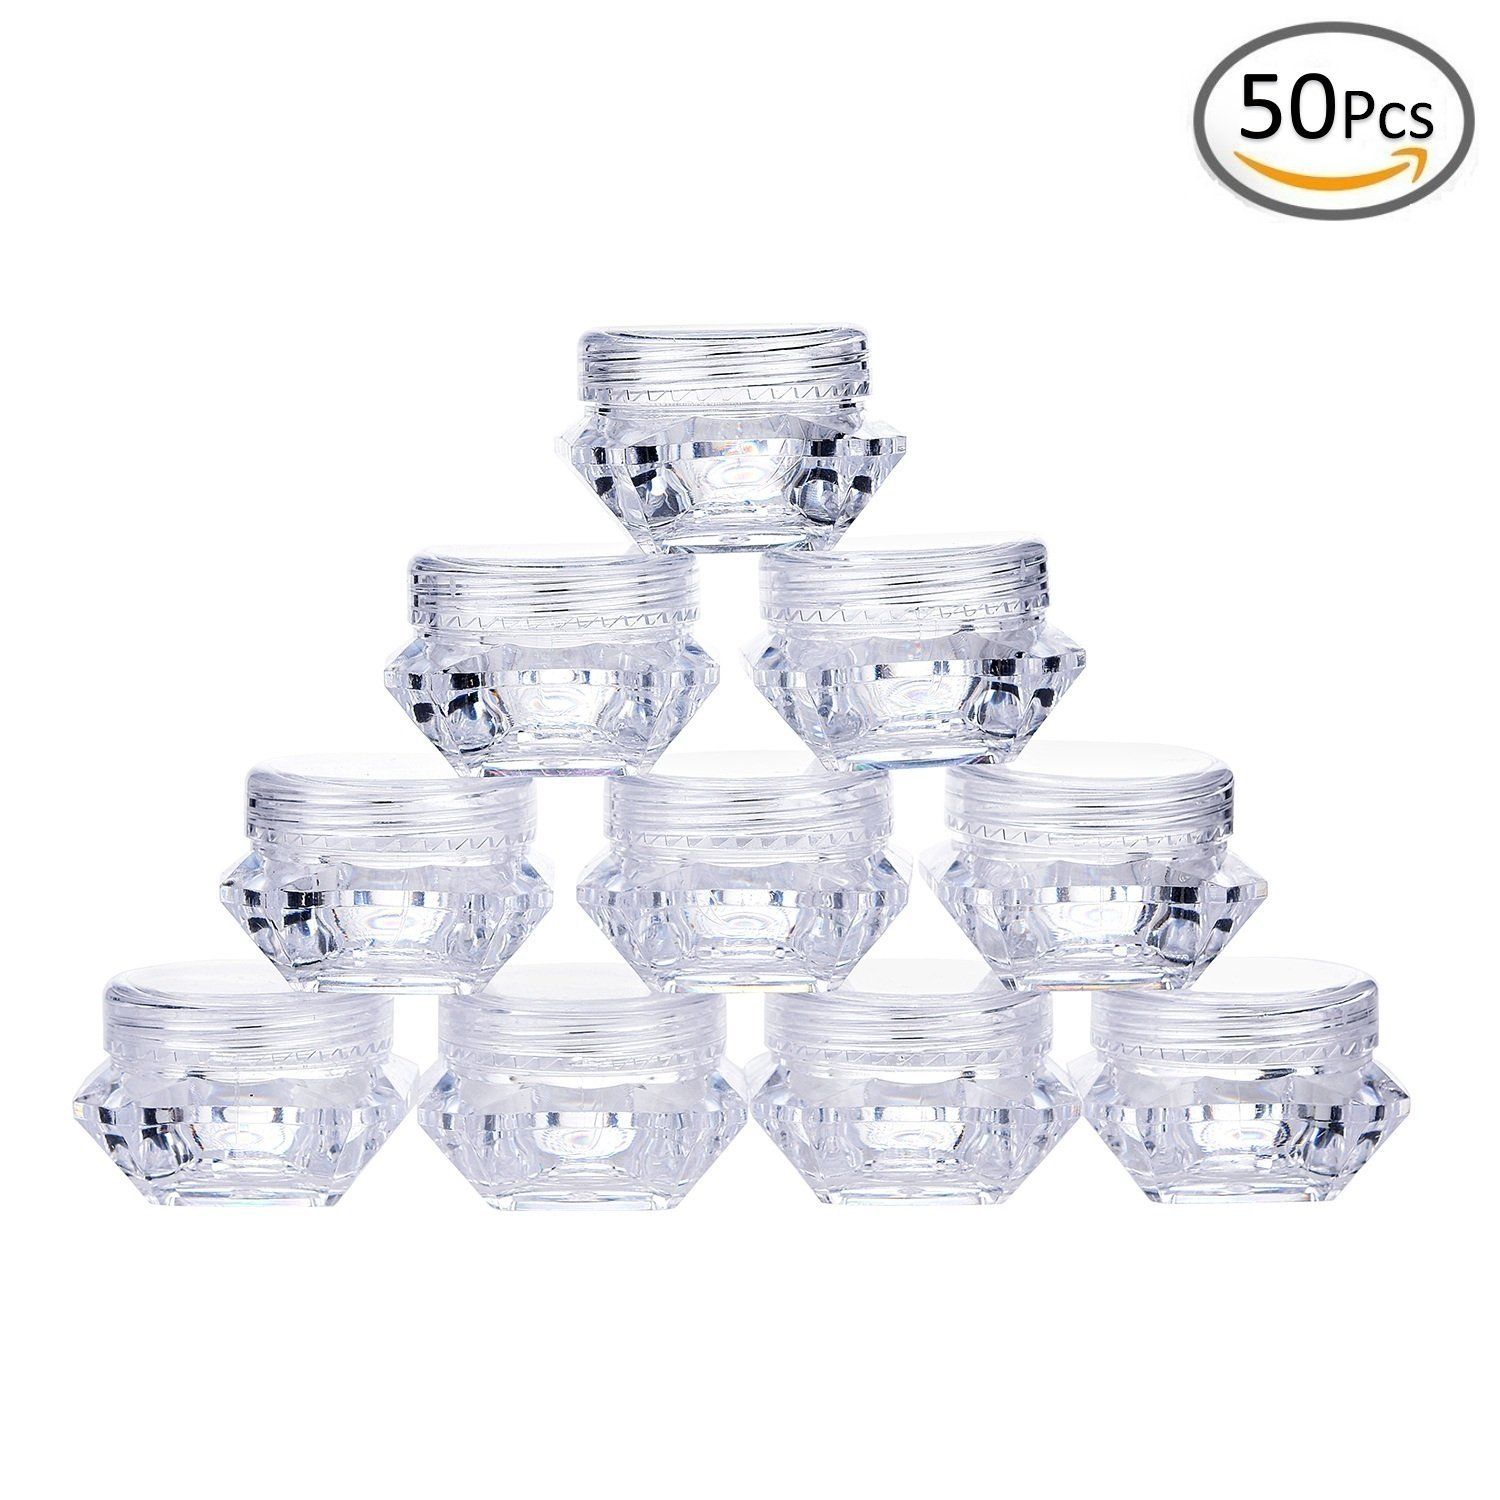 Goege 5 Gram Jar 5ML Clear Empty Plastic Pot Containers Refillable Cosmetic Lotion Diamond Container Screw Cap Lid 50 Pcs